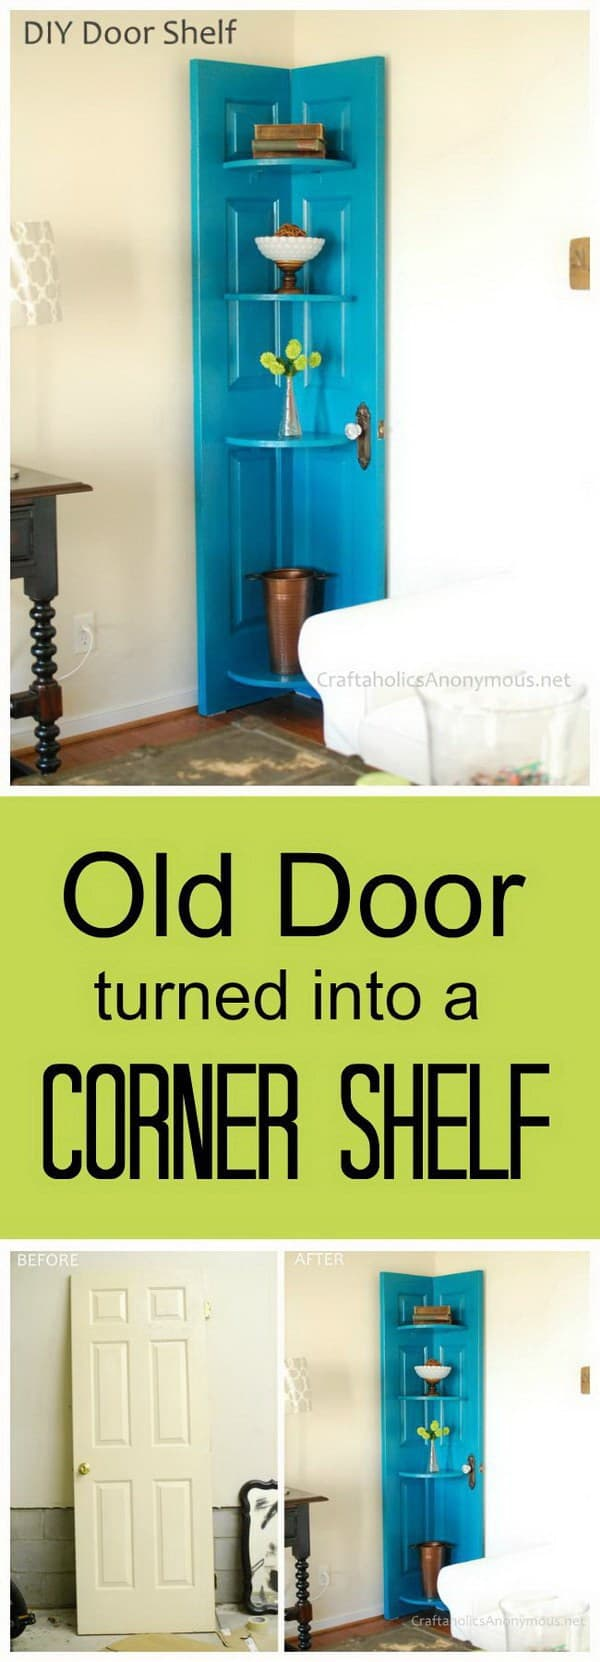 DIY shelves door shelf